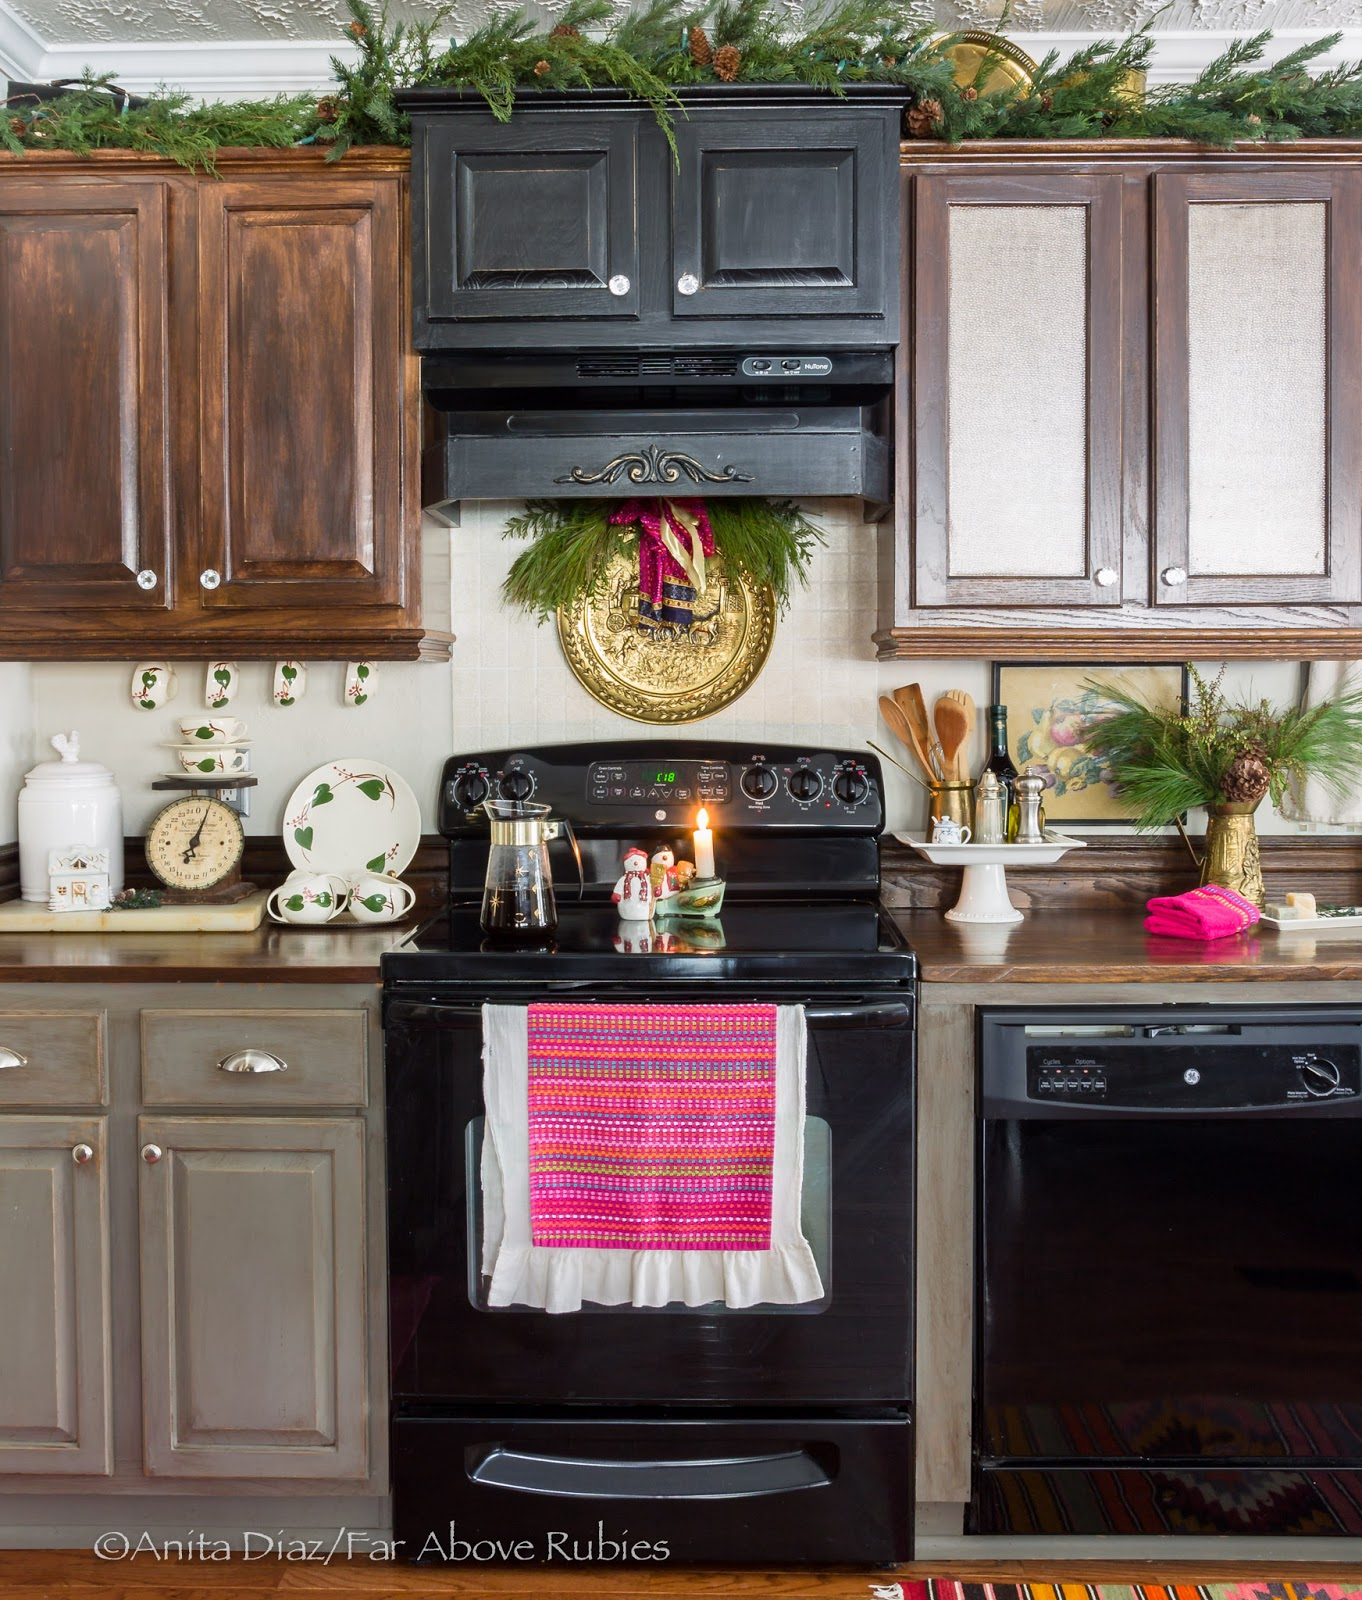 Far Rubies Christmas dining room and kitchen pics that didn